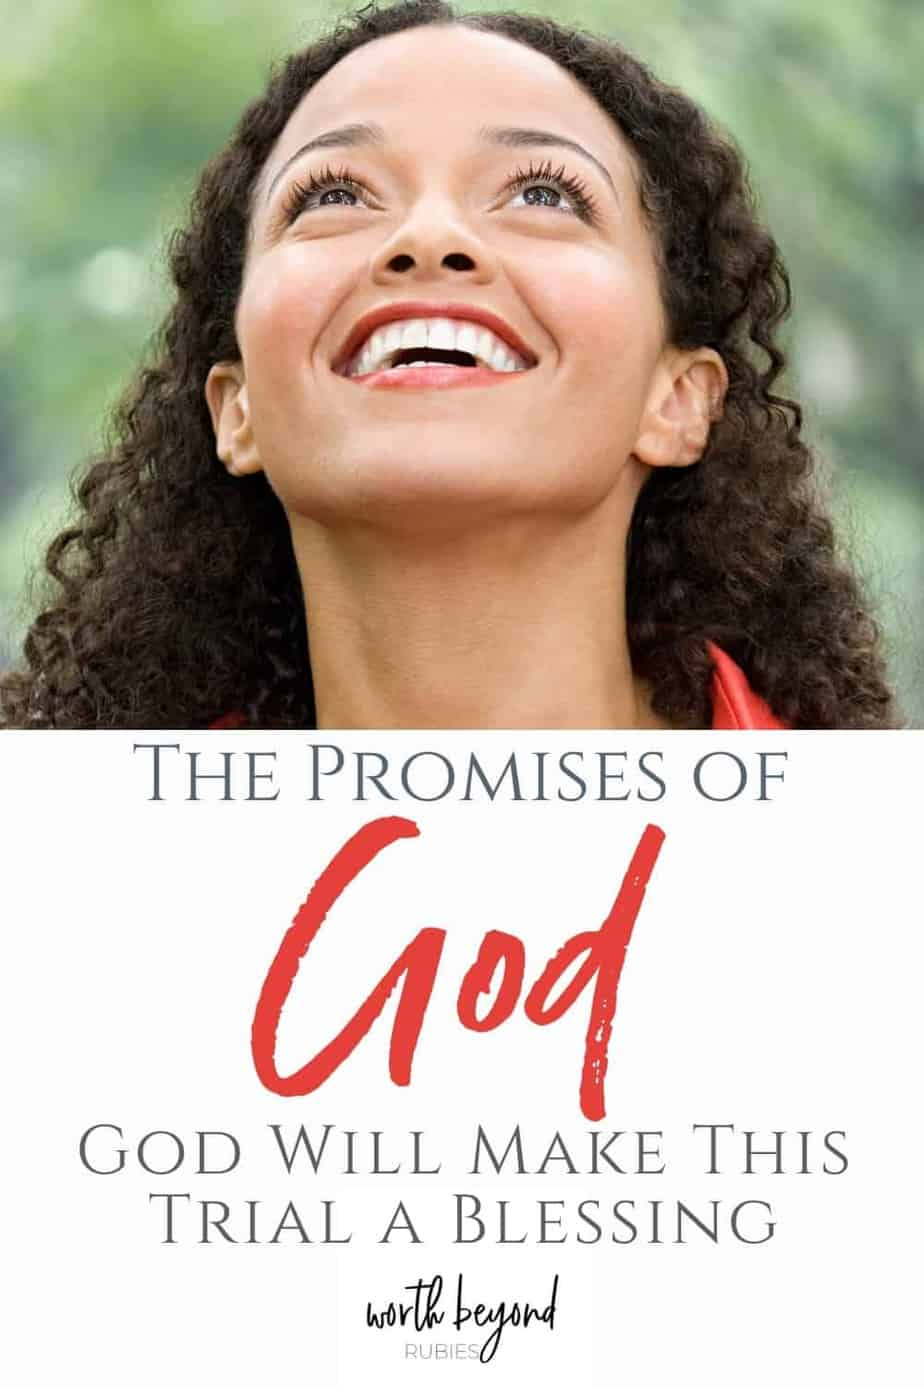 An image a beautiful black woman with long hair, wearing a reddish/orange jacket, standing on a walkway that is covered in trees and she is looking up in amazement at them - a text overlay that says The Promises of God - God Will Make This Trial a Blessing